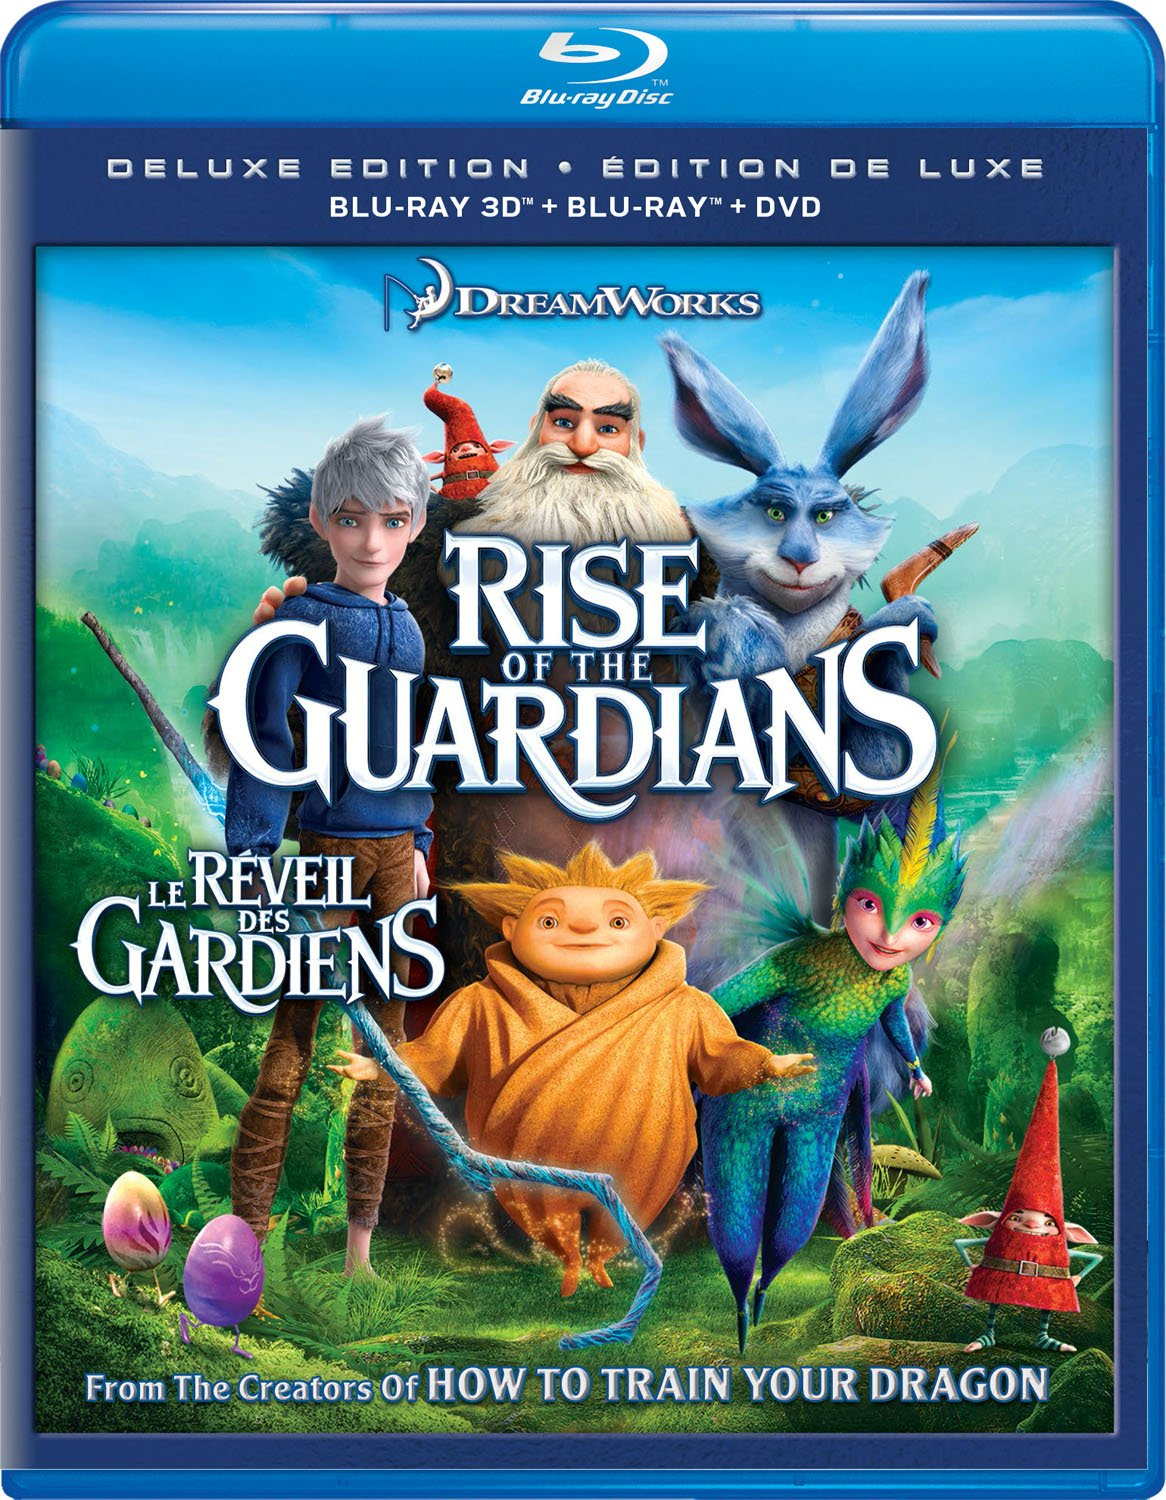 Amazon.com: Rise Of The Guardians [Blu-ray]: Hugh Jackman, Alec Baldwin, Isla Fisher, Chris Pine, Jude Law, Dakota Goyo, Khamani Griffin, Kamil McFadden, ...